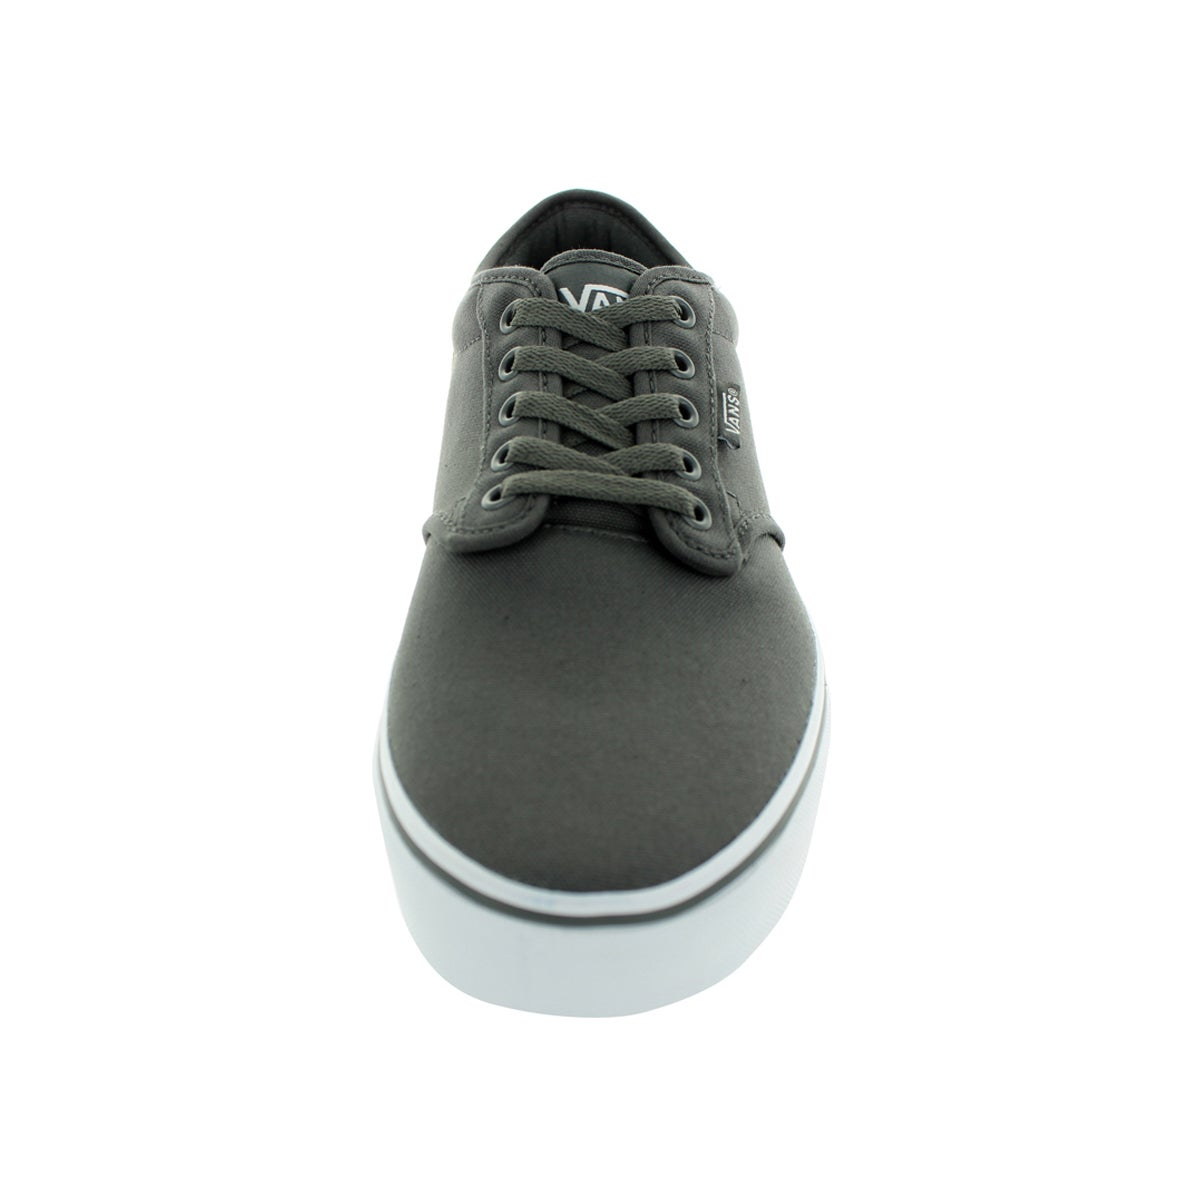 5960543ac69d29 Shop Vans Men s Atwood Pewter White Canvas Skate Shoe - Free Shipping Today  - Overstock - 12115337